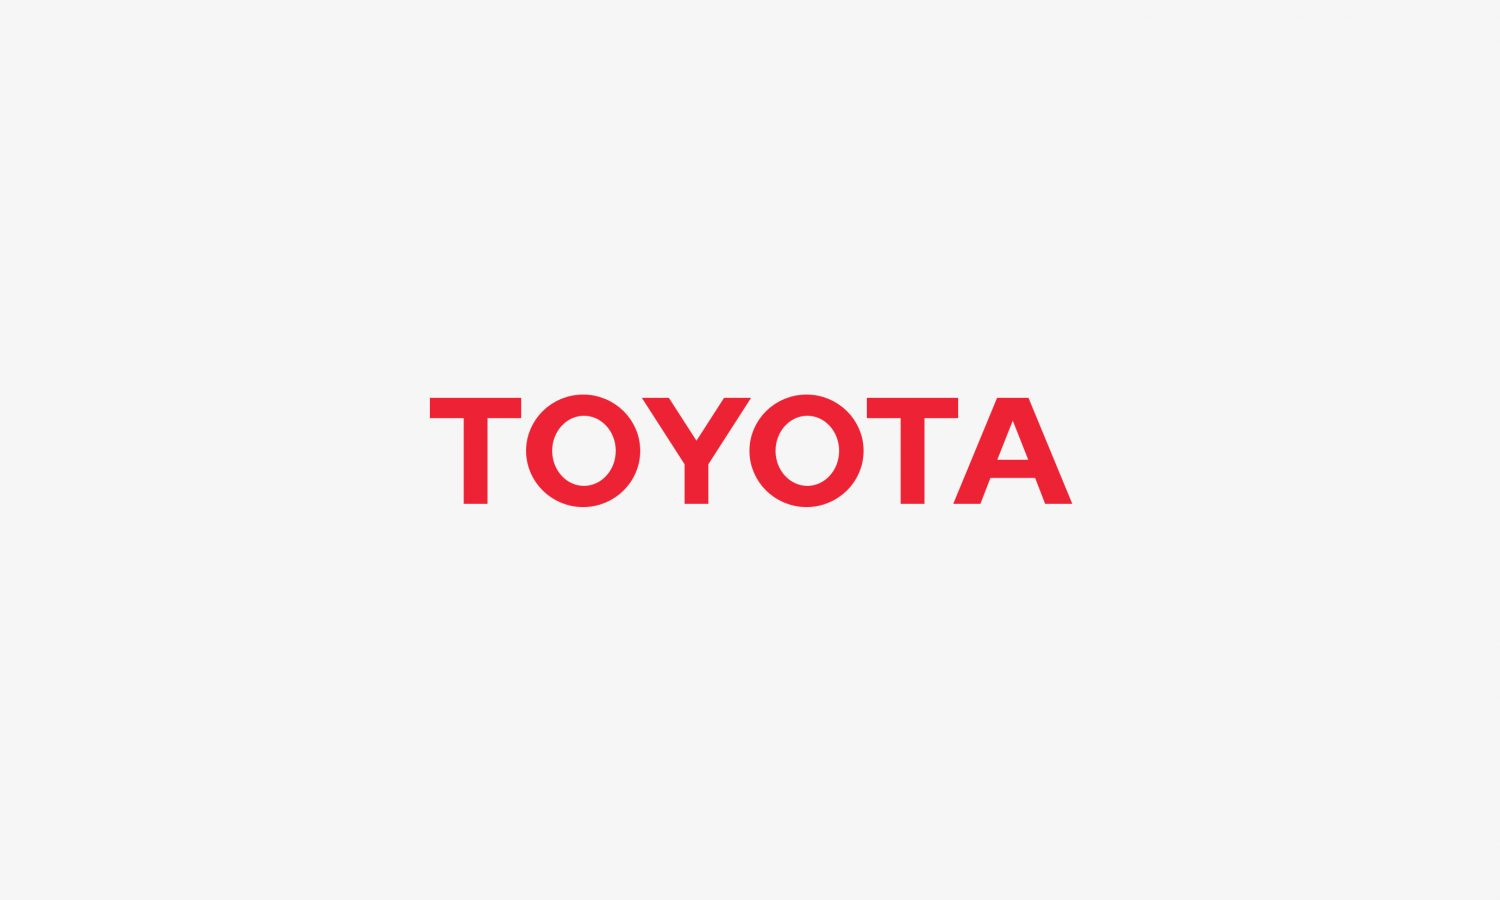 Toyota is conducting a safety recall involving certain Tundra, Sequoia, and Avalon vehicles